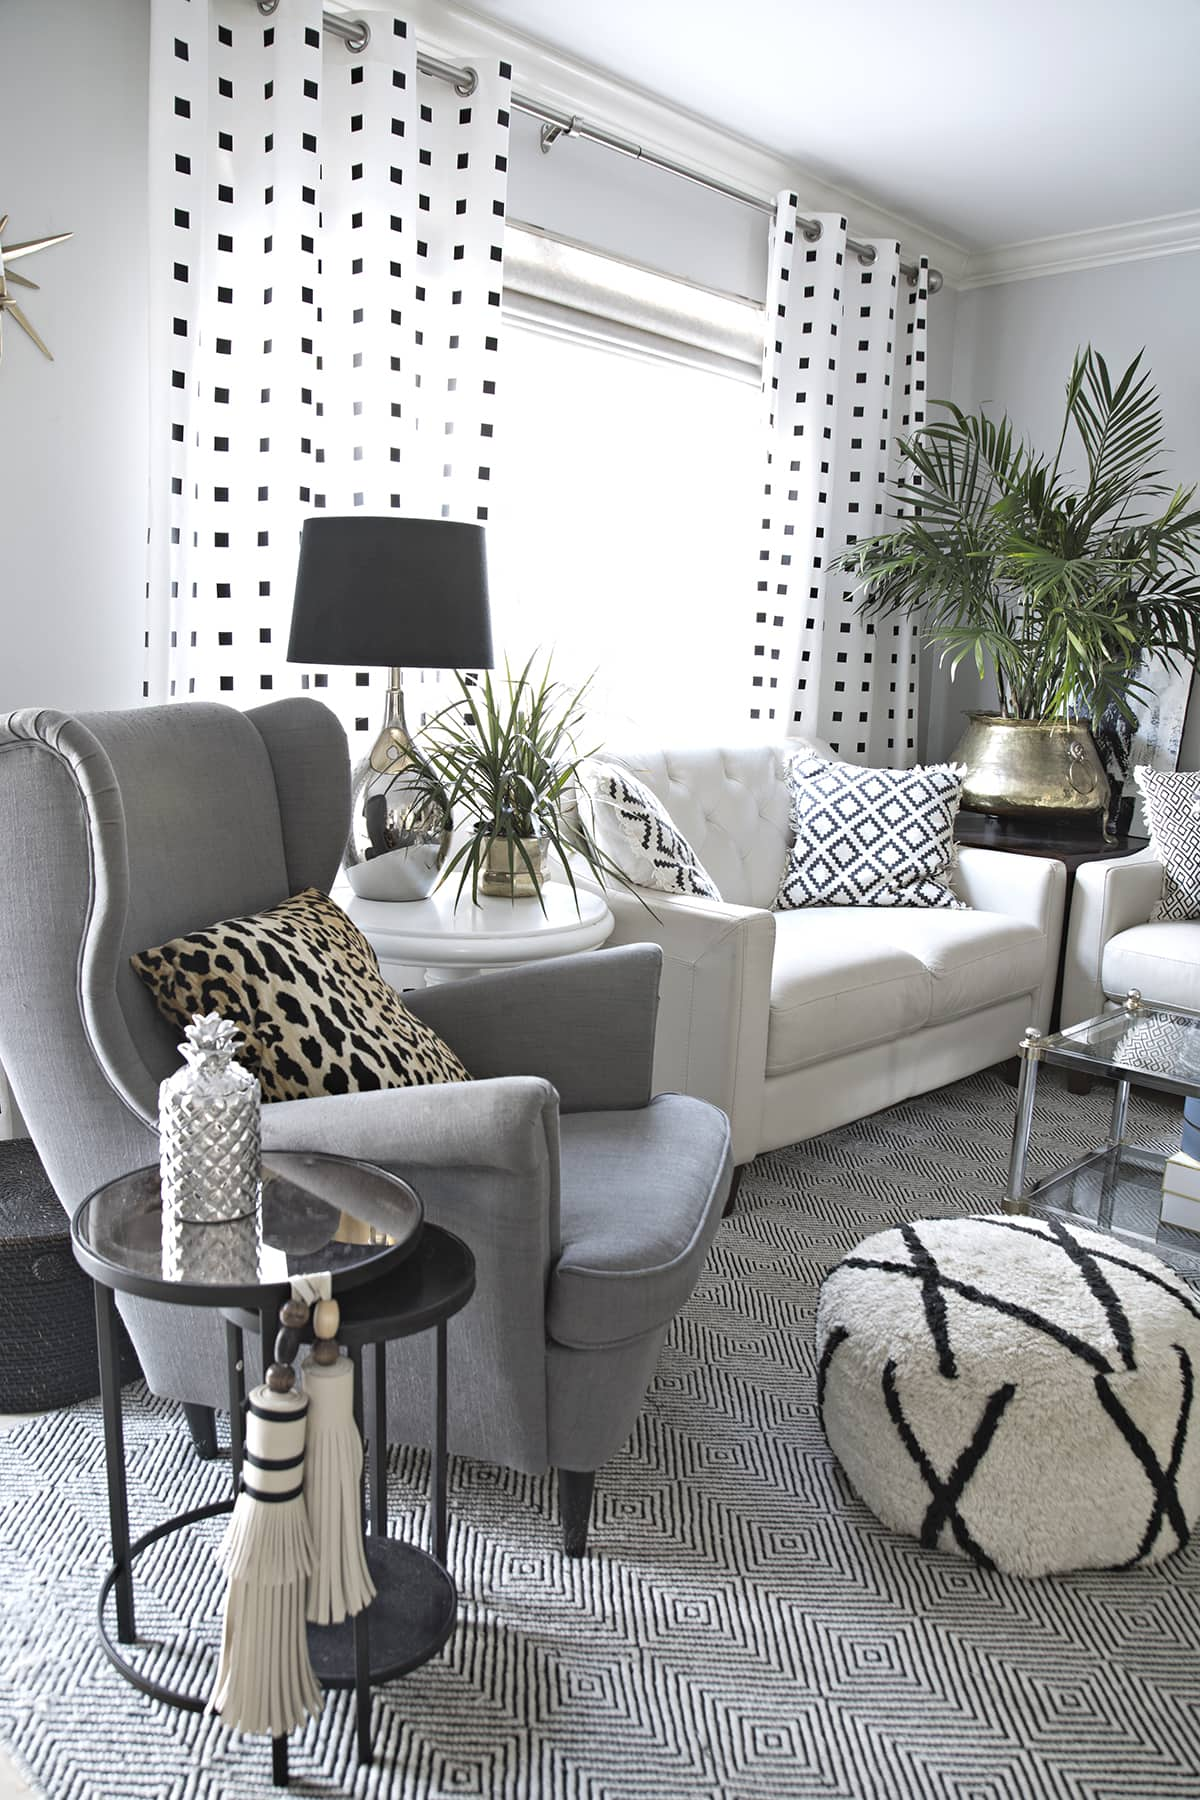 Black White and Grey Living Room Decor